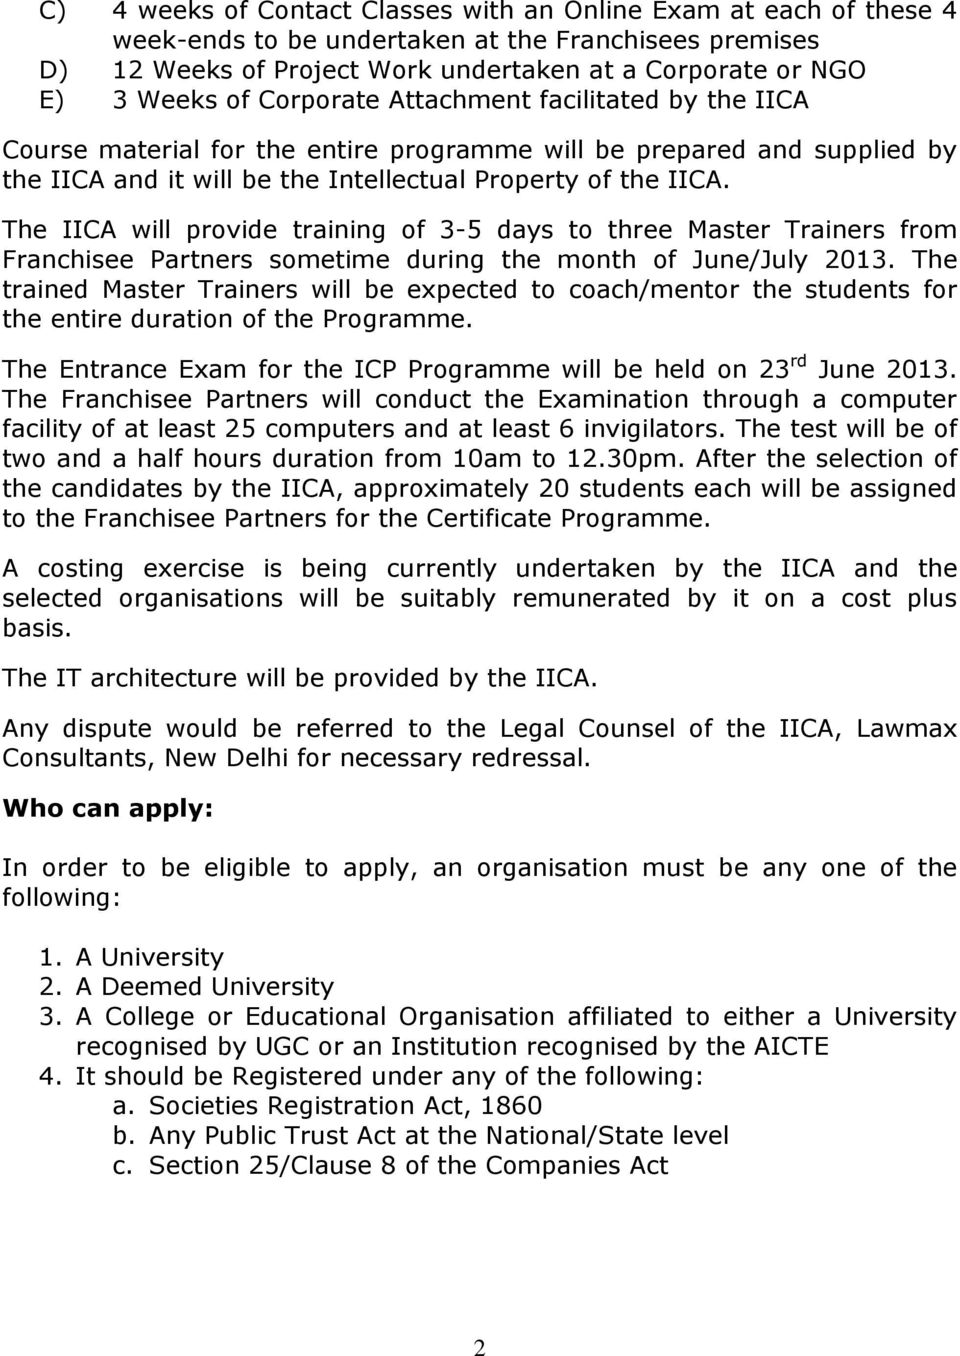 The IICA will provide training of 3-5 days to three Master Trainers from Franchisee Partners sometime during the month of June/July 2013.